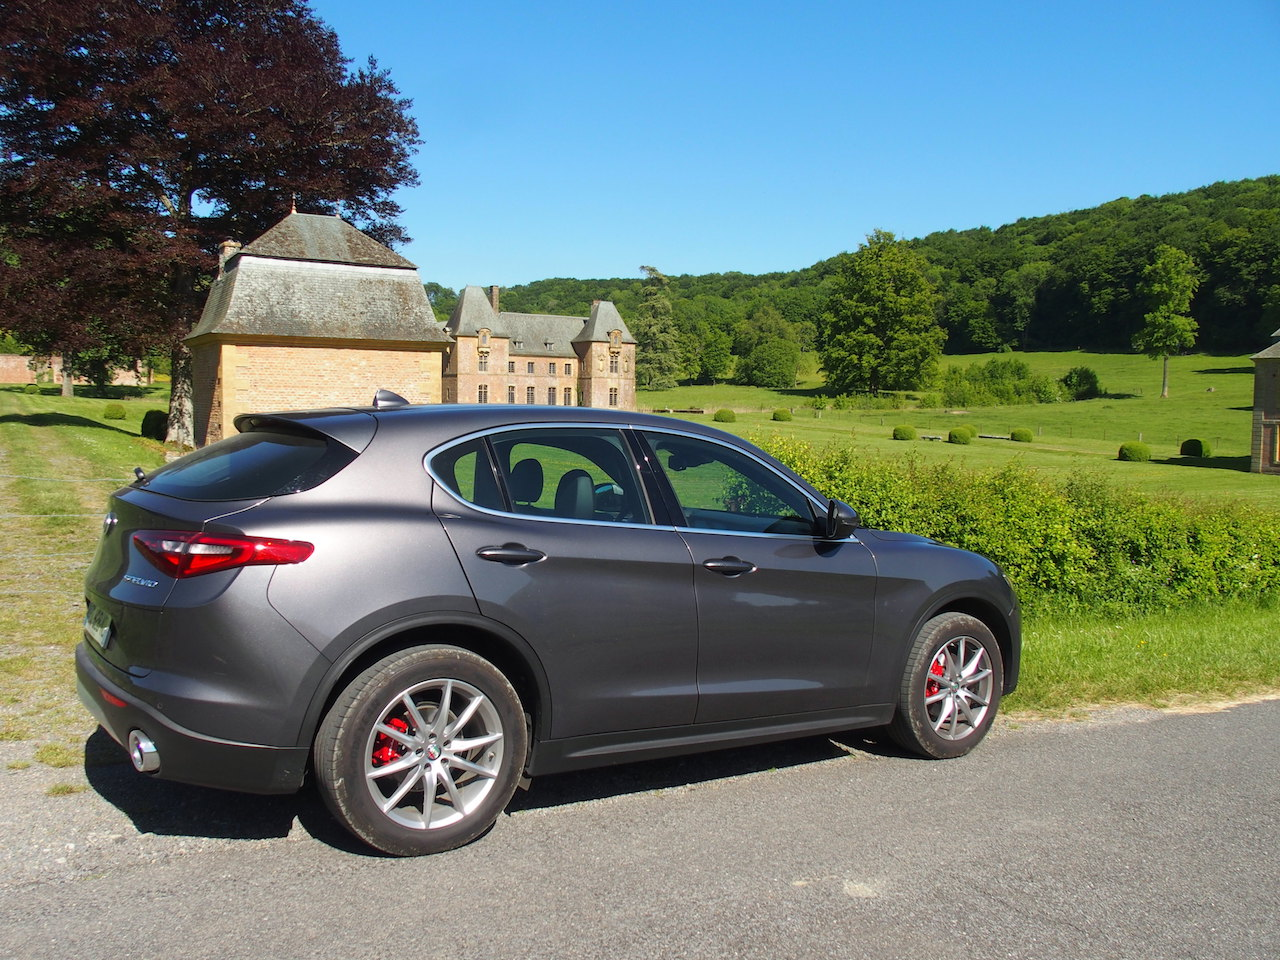 essai le tour de l alfa romeo stelvio 2 2 210 ch at8 q4 en 10 questions blog automobile. Black Bedroom Furniture Sets. Home Design Ideas